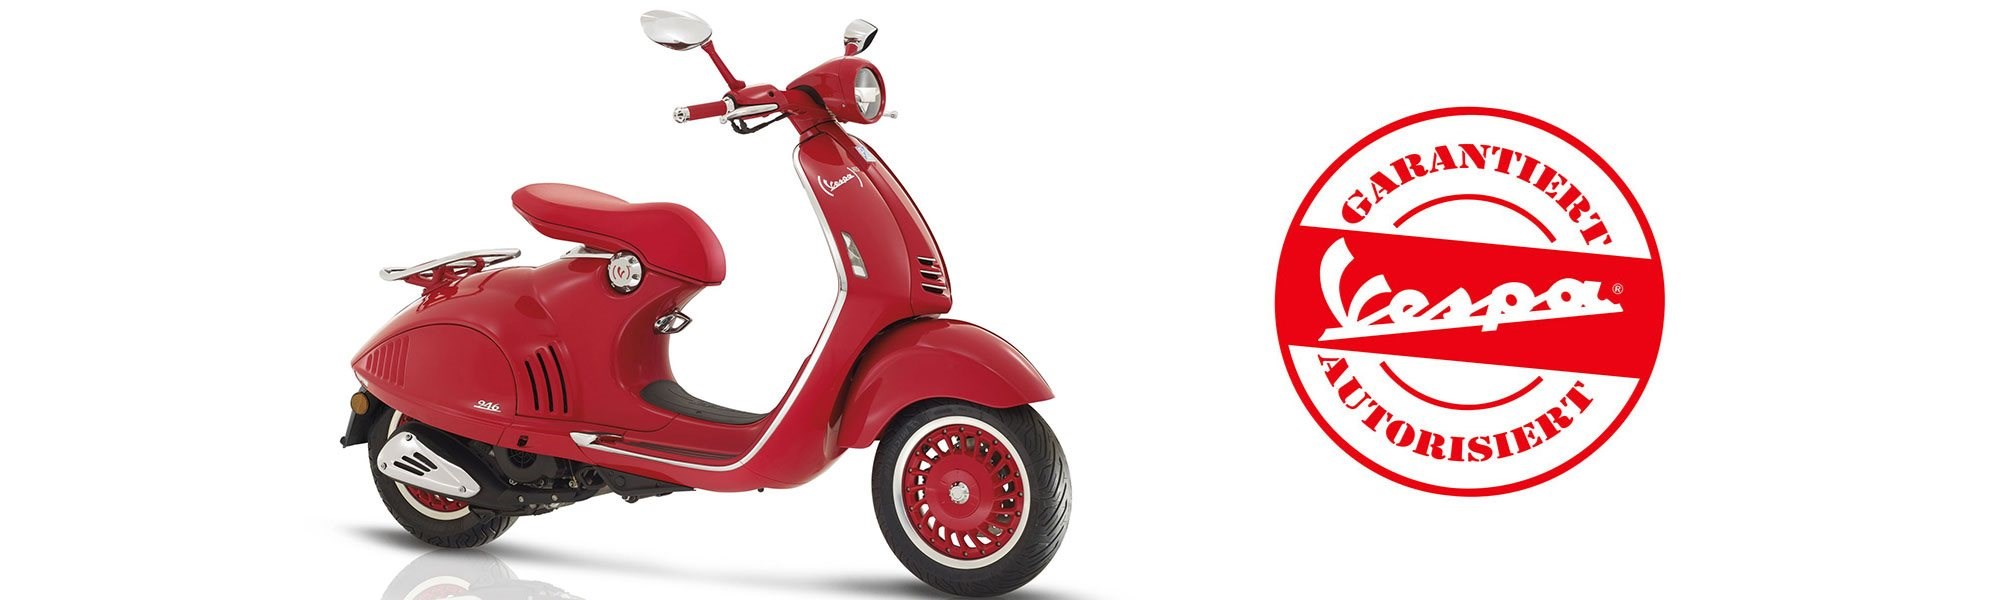 Vespa Authorisiert